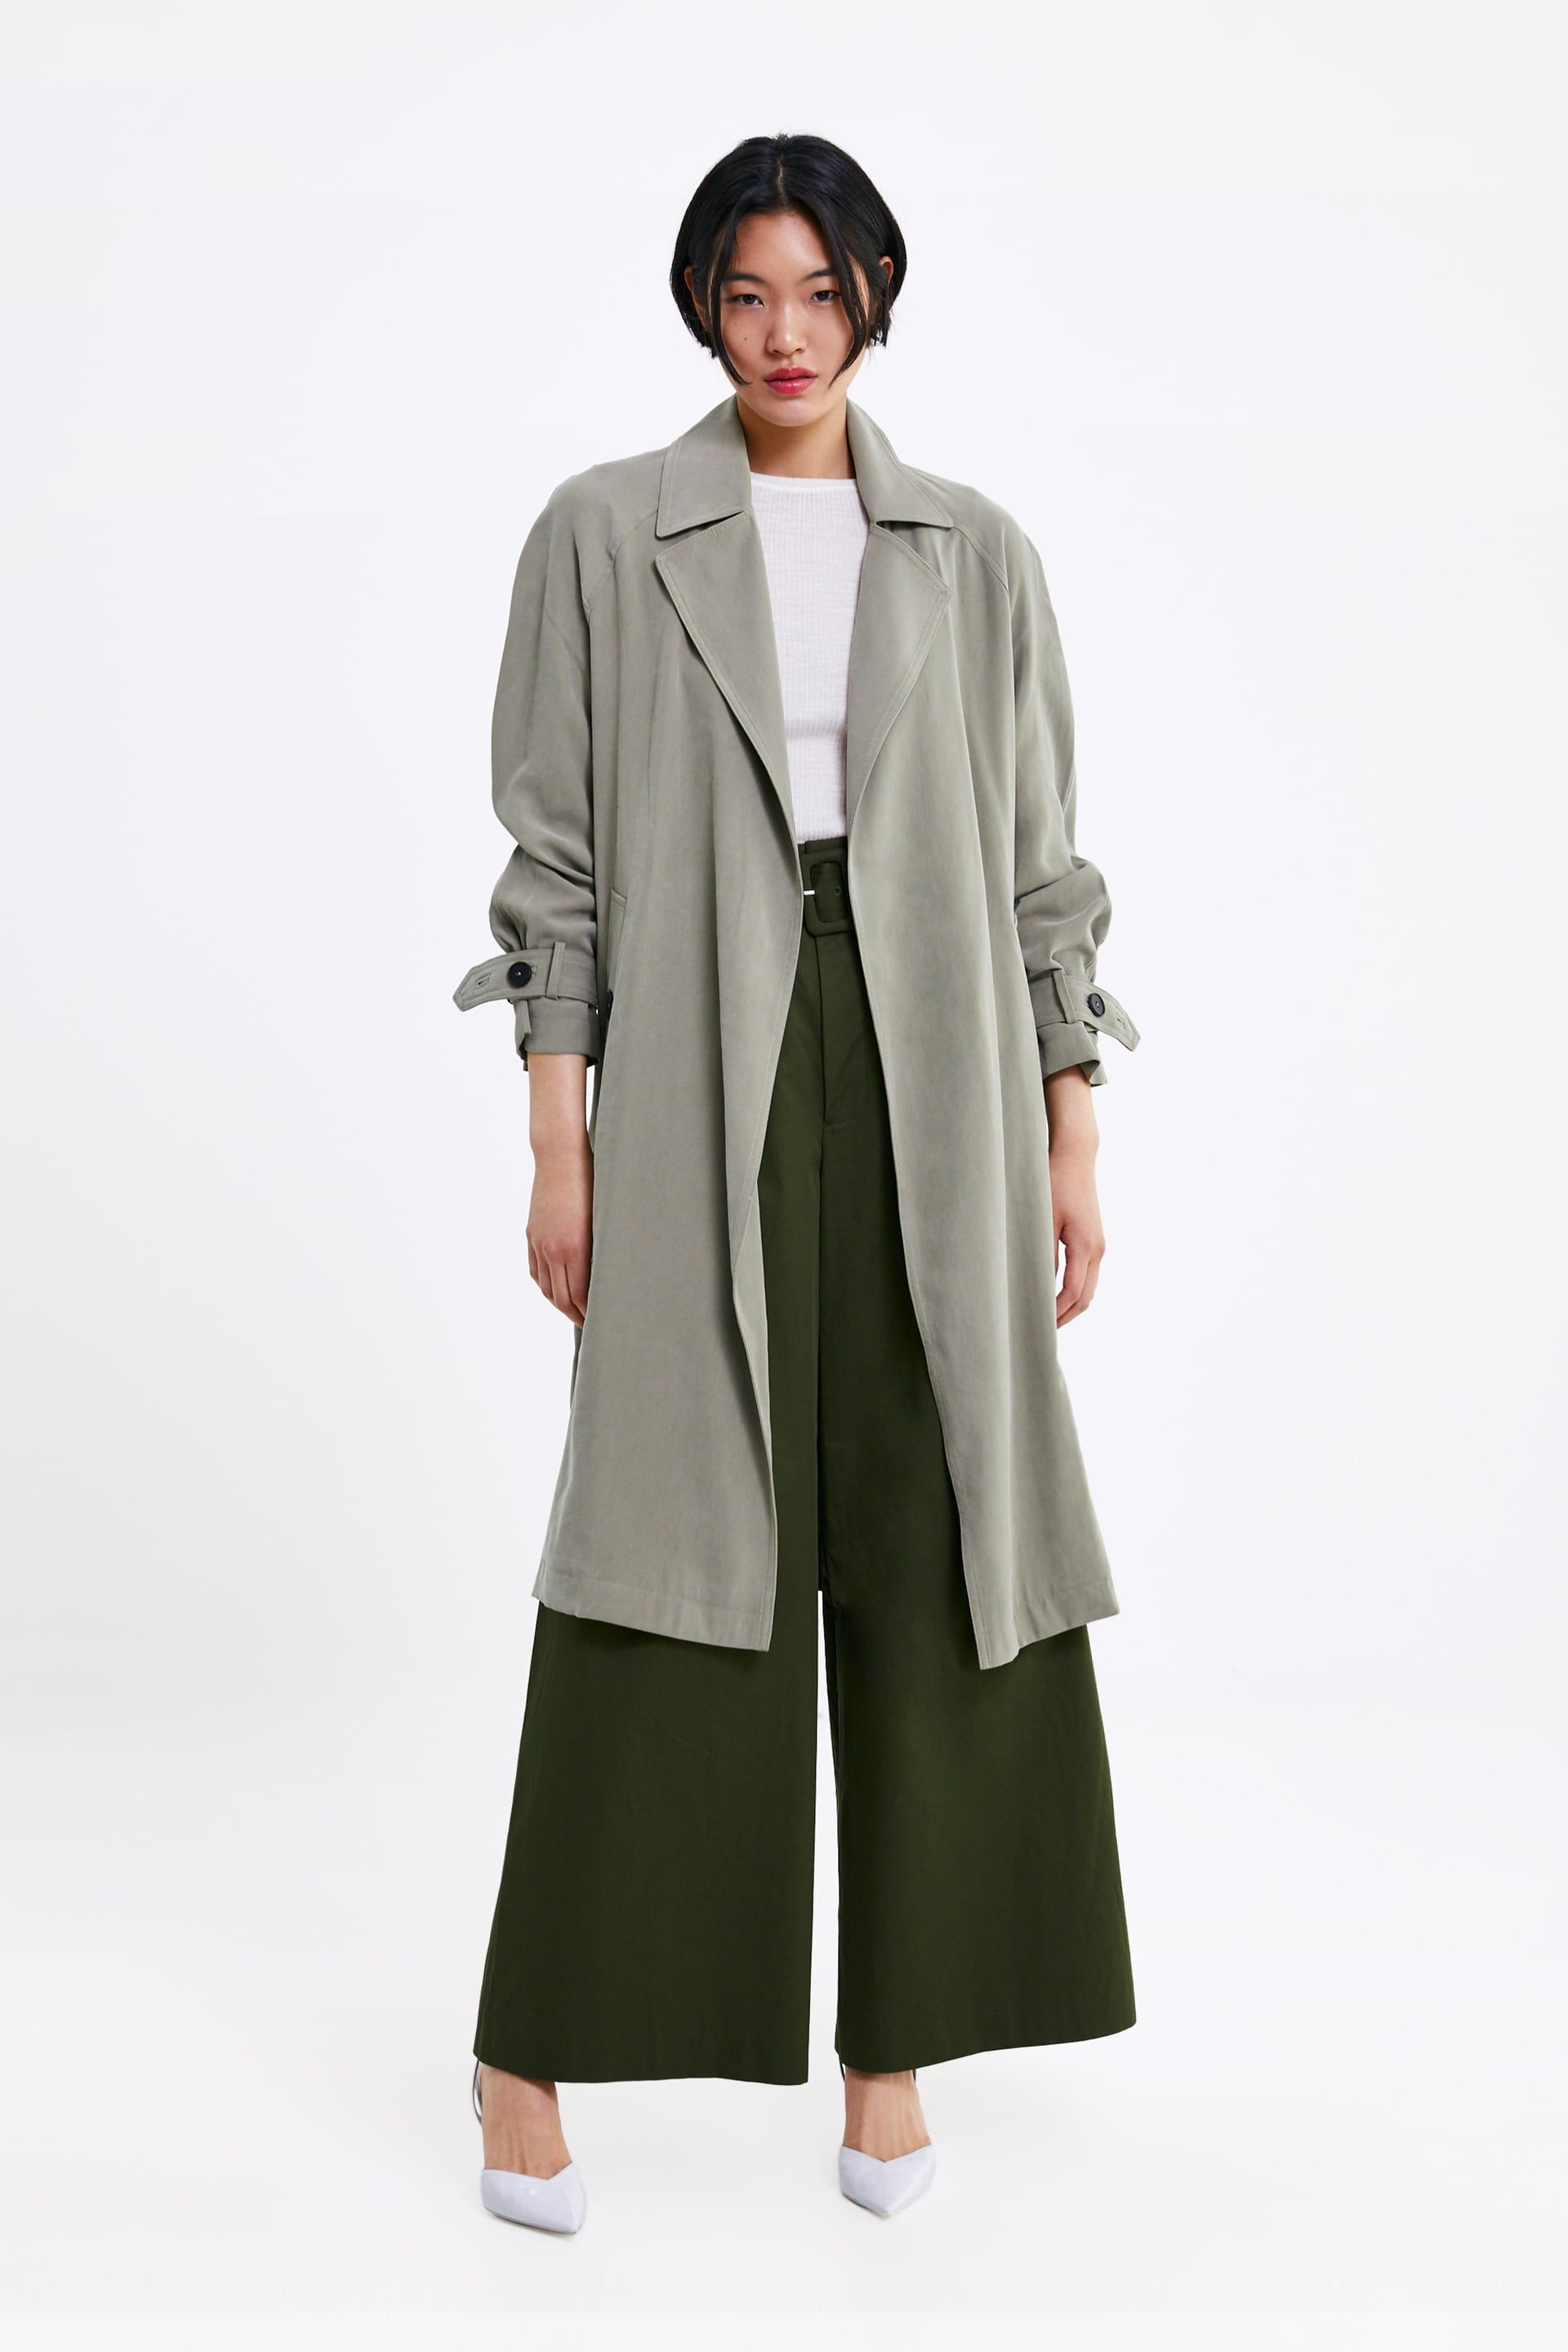 FLOWING TRENCH COAT WITH POCKETS - NEW IN-WOMAN | ZARA United Kingdom | Trench  coat, Coat, Spring coat